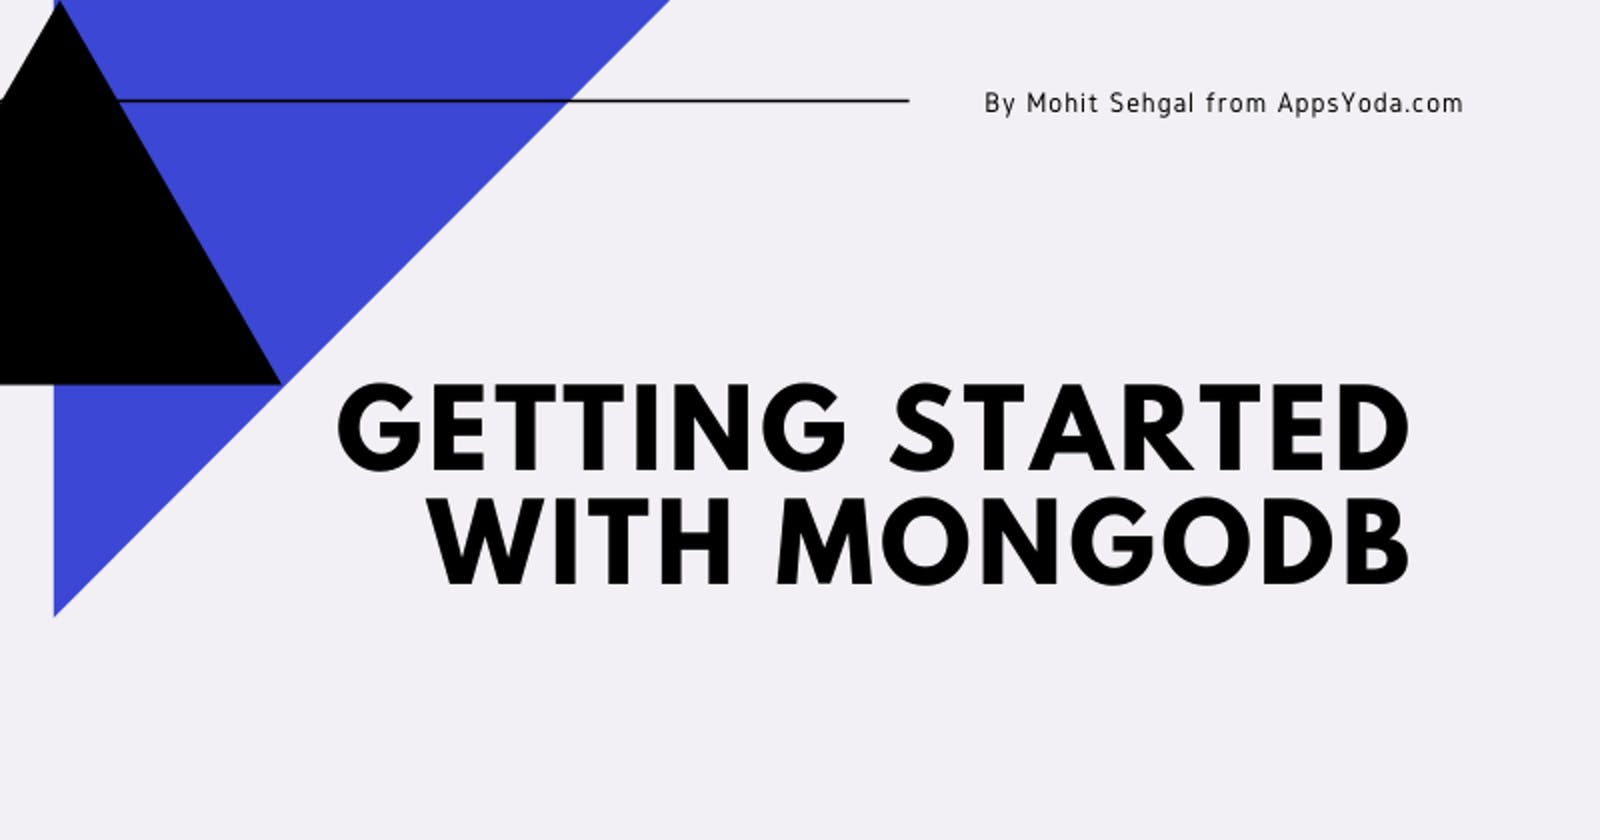 Easily Getting Started with MongoDB